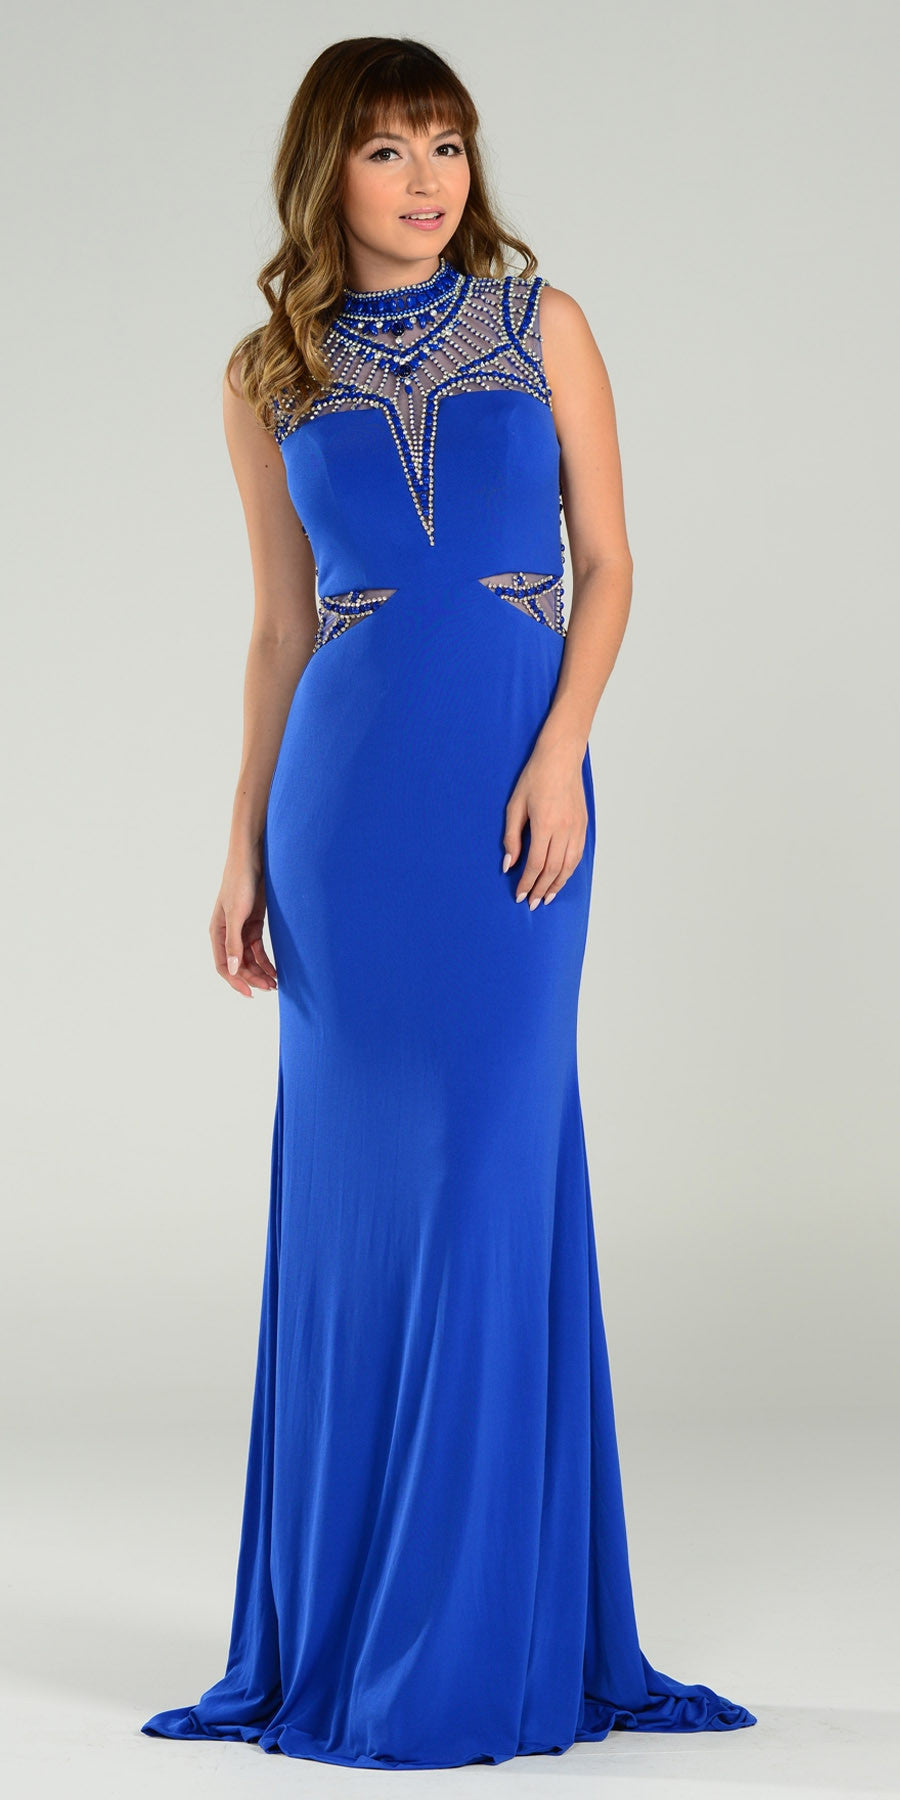 ON SPECIAL LIMITED STOCK - Luxurious Floor Length Formal Gown Royal Blue High Neck Beading